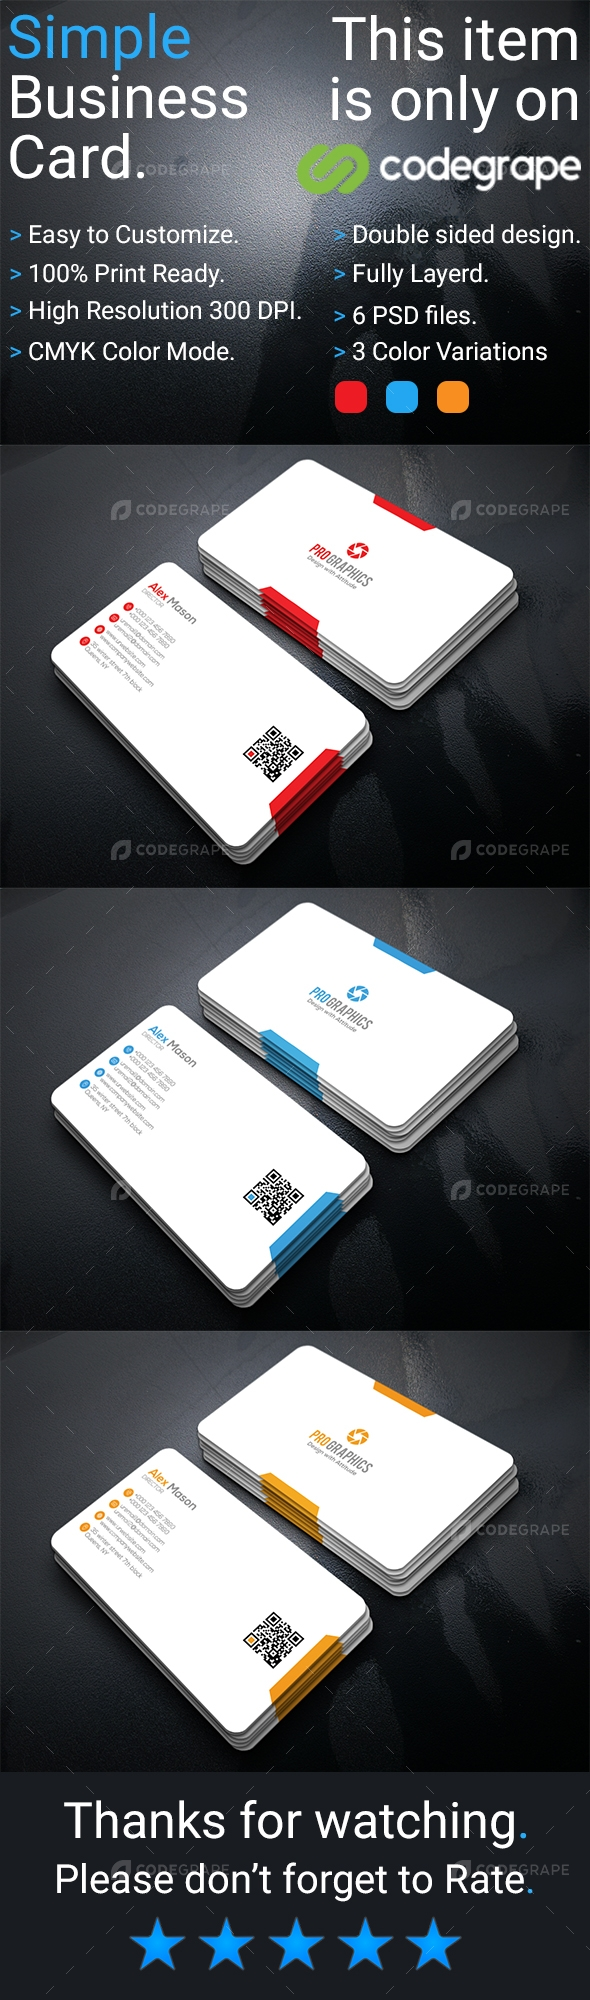 Simple Business Card Vol- 5